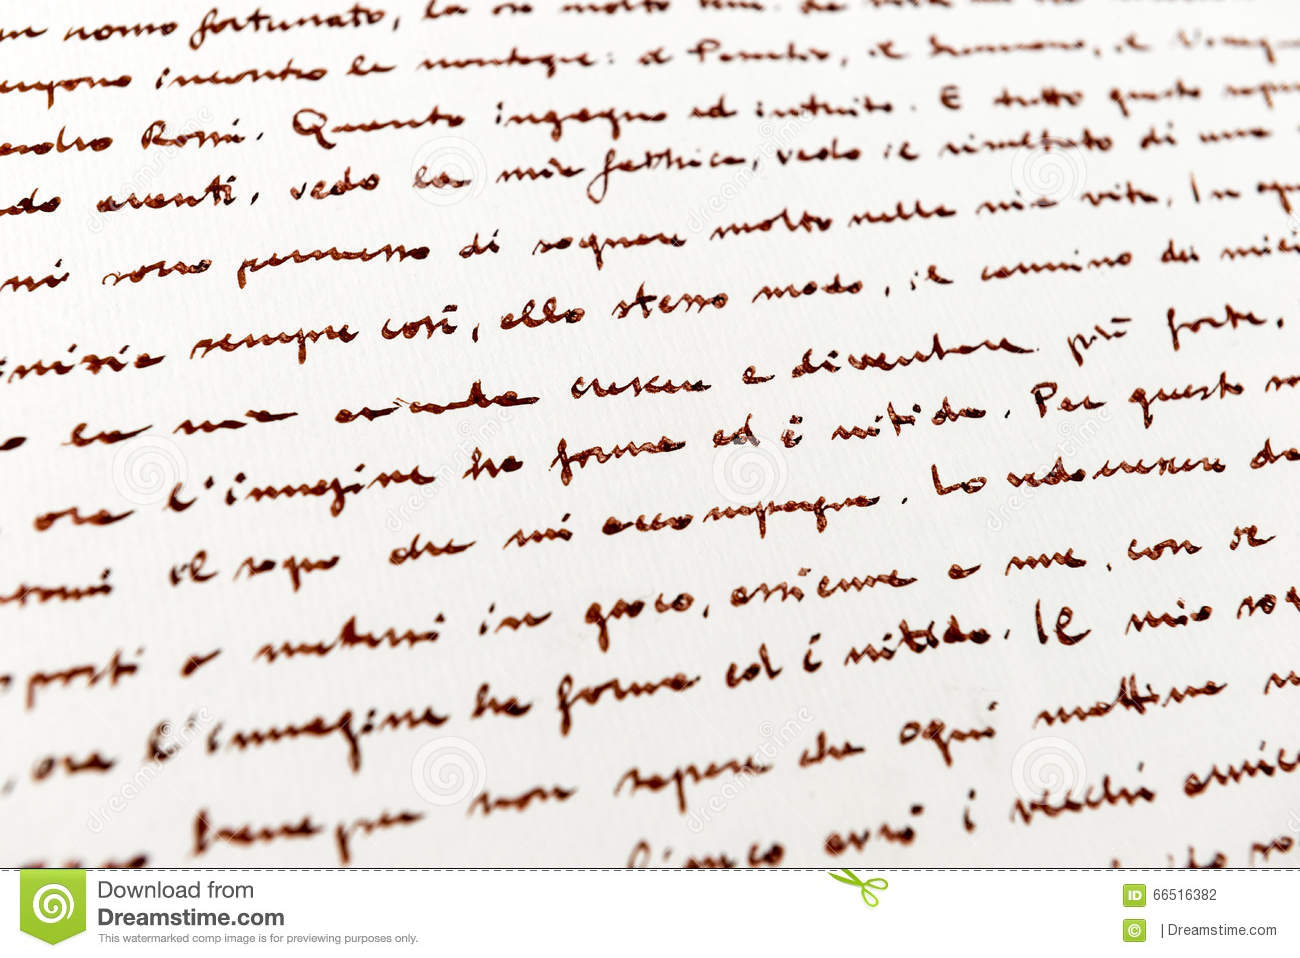 italian letter writing Free tips, advice, and sample letters to help you write great letters.